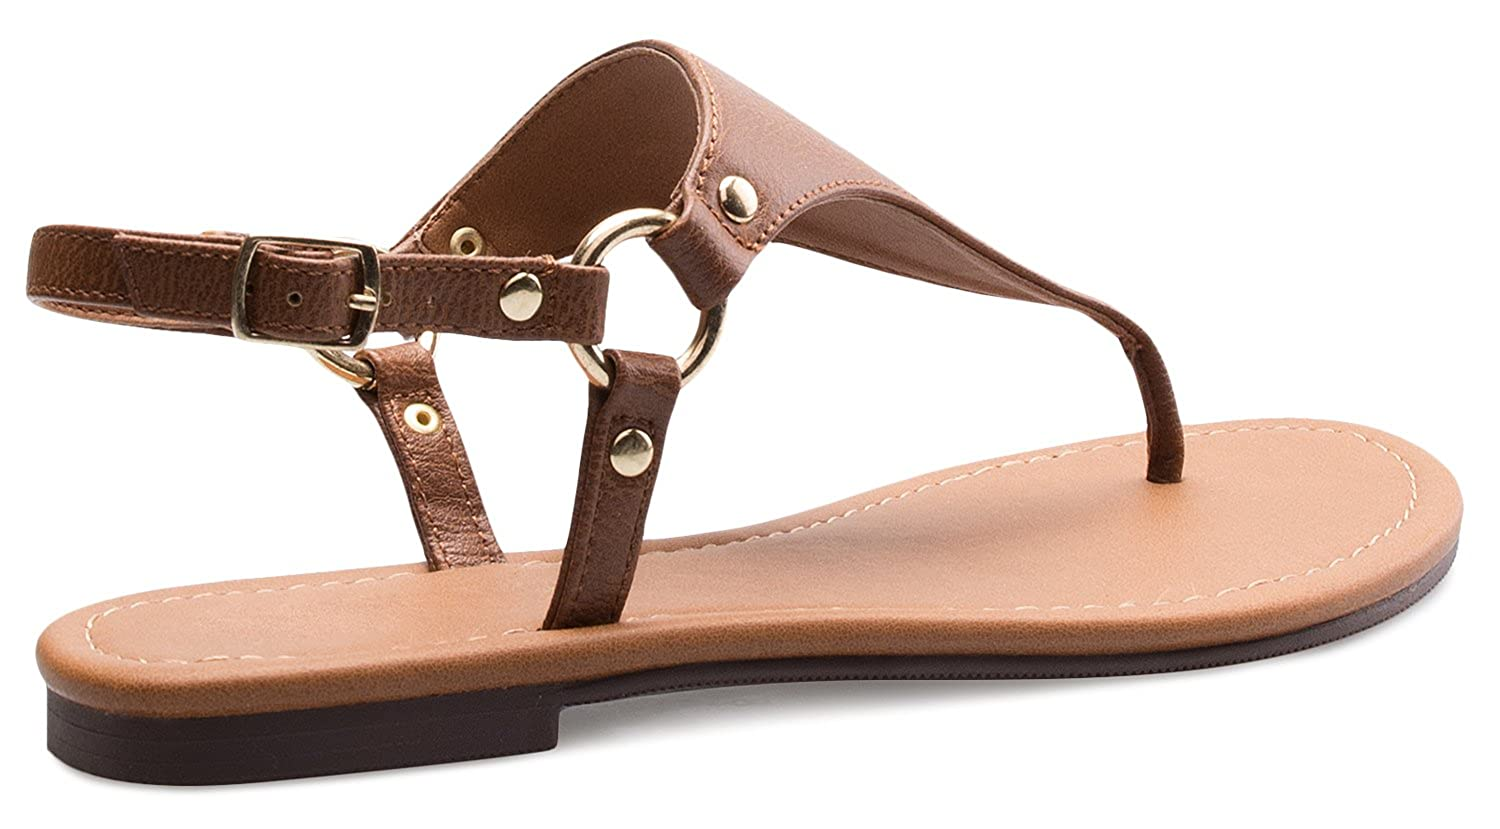 OLIVIA K Women's Thong Casual Thong Women's Flats Flip Flop Sandals with Cut Out Upper - Comfort, Easy on-Off Slide B073RTJYMD 6.5 B(M) US Tan Ring dddbd7